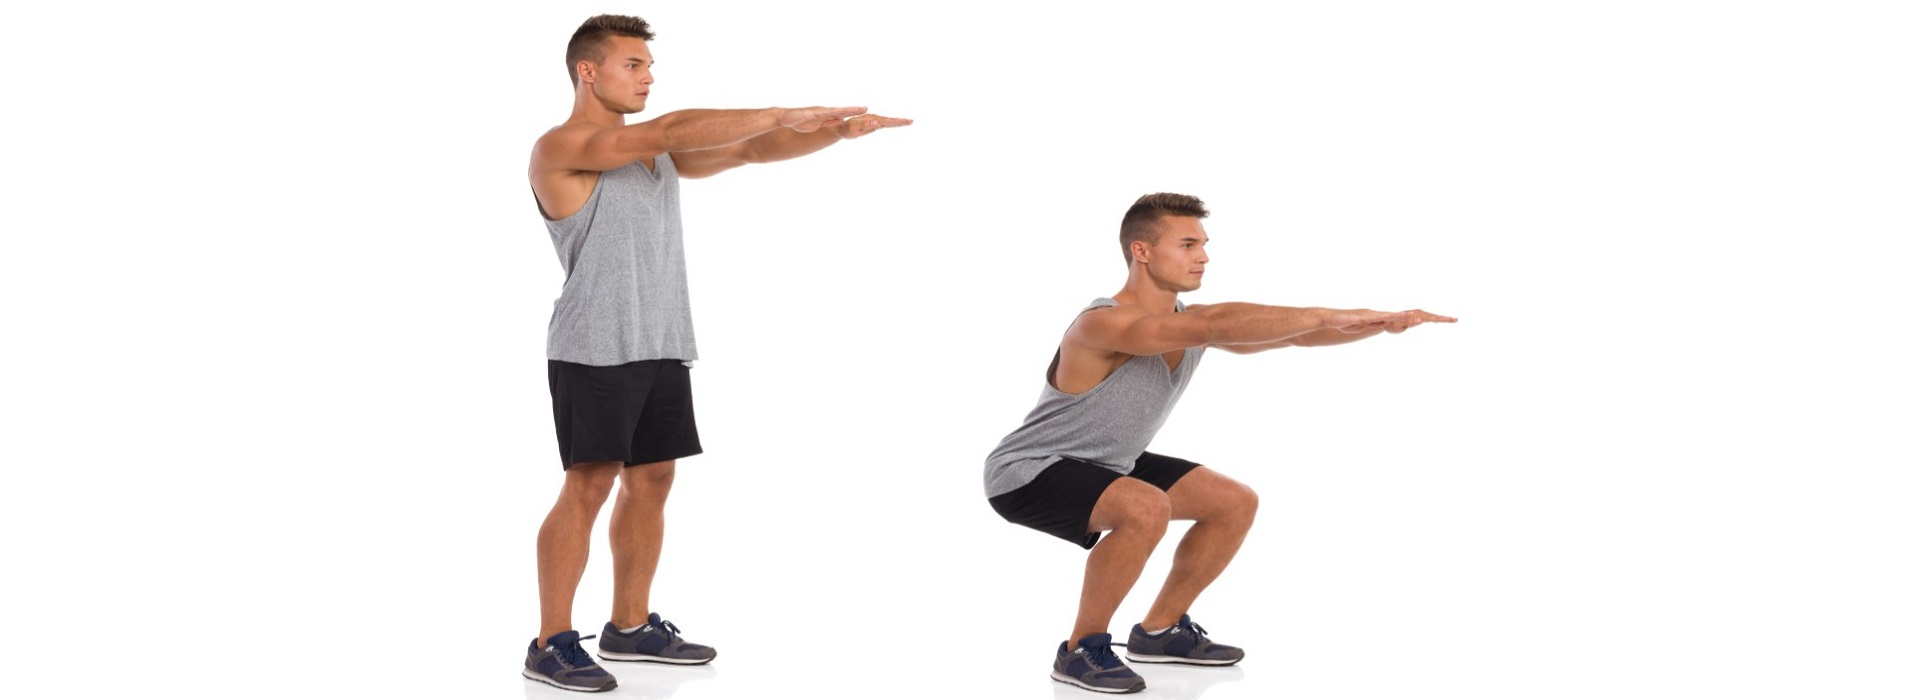 male arms out in front in starting position of a body weight squat then in the squat position